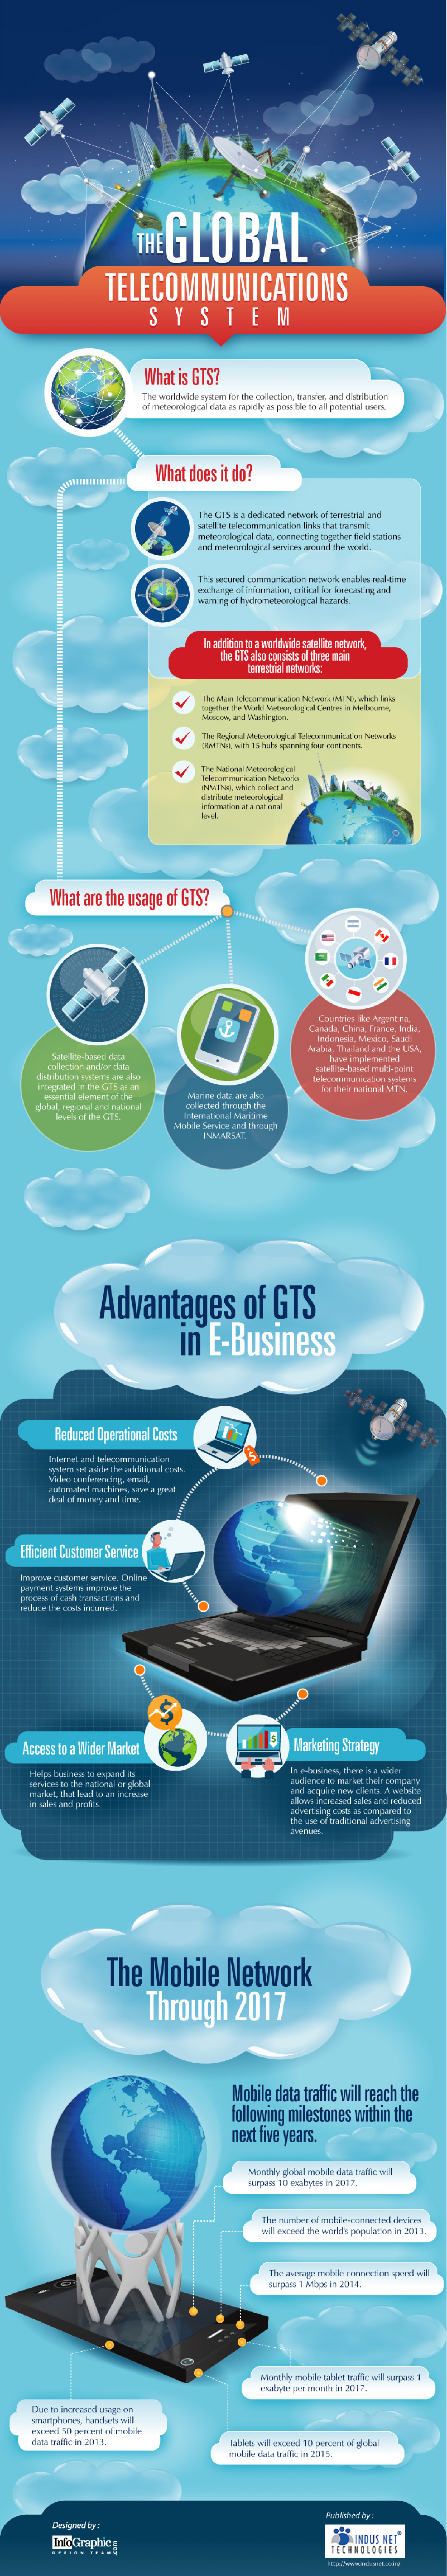 The Global Telecommunications System Infographic